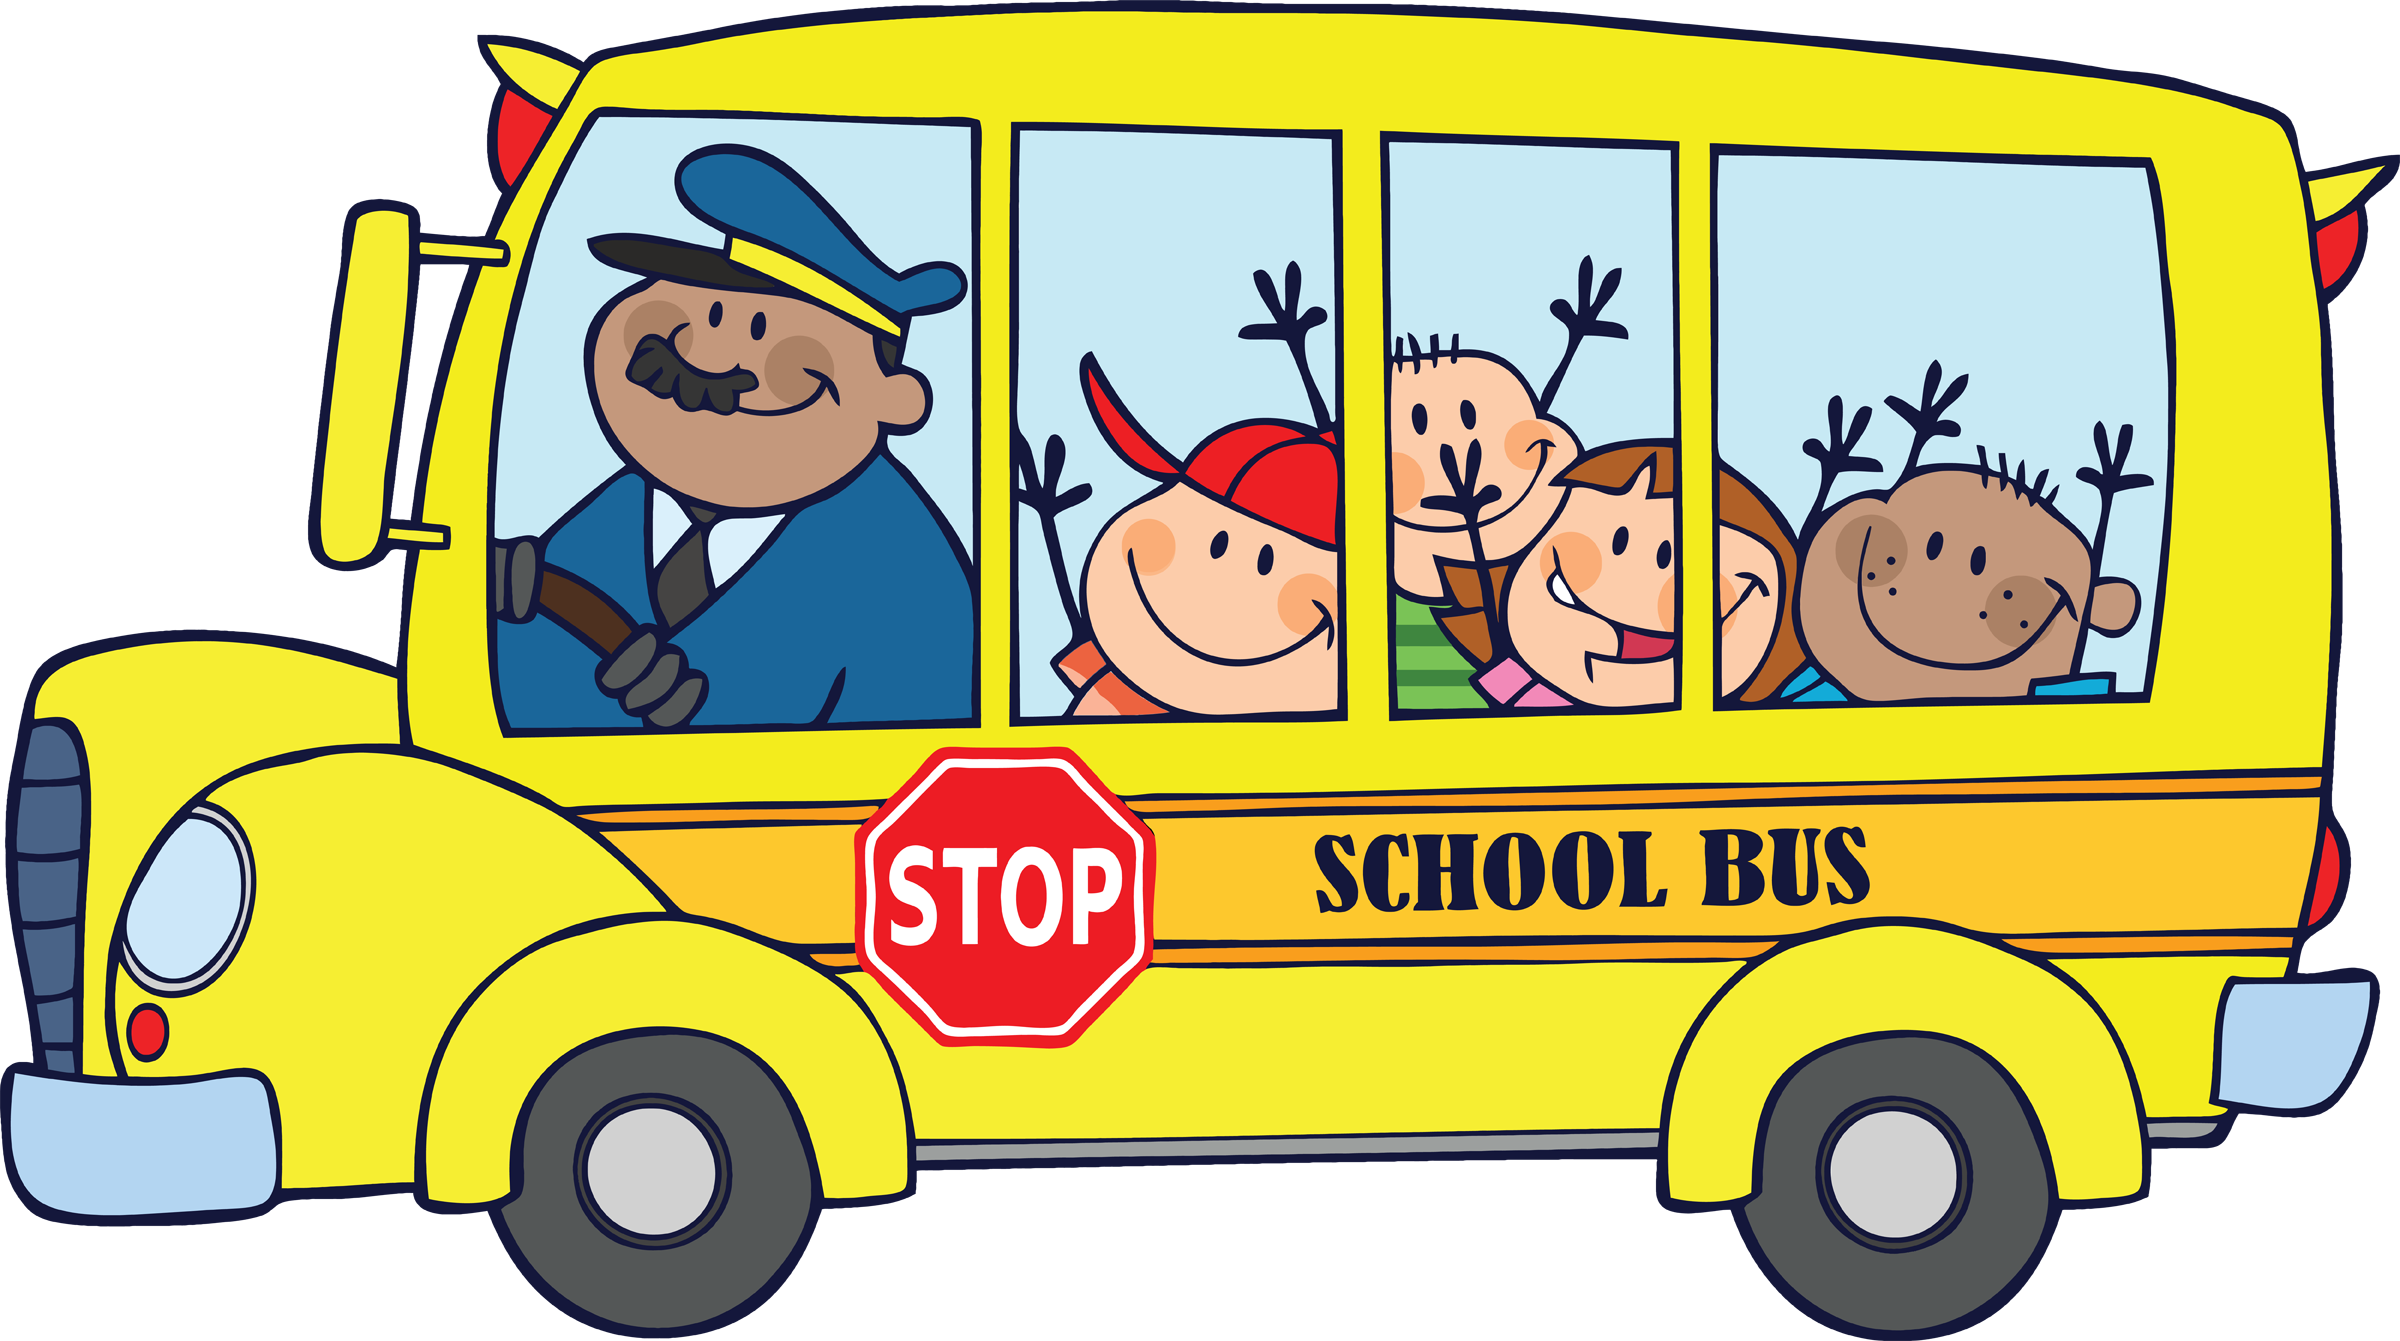 school-bus-clip-art-for-kids-school-bus-driver-quotes-5047_school_bus_with_happy_children.png